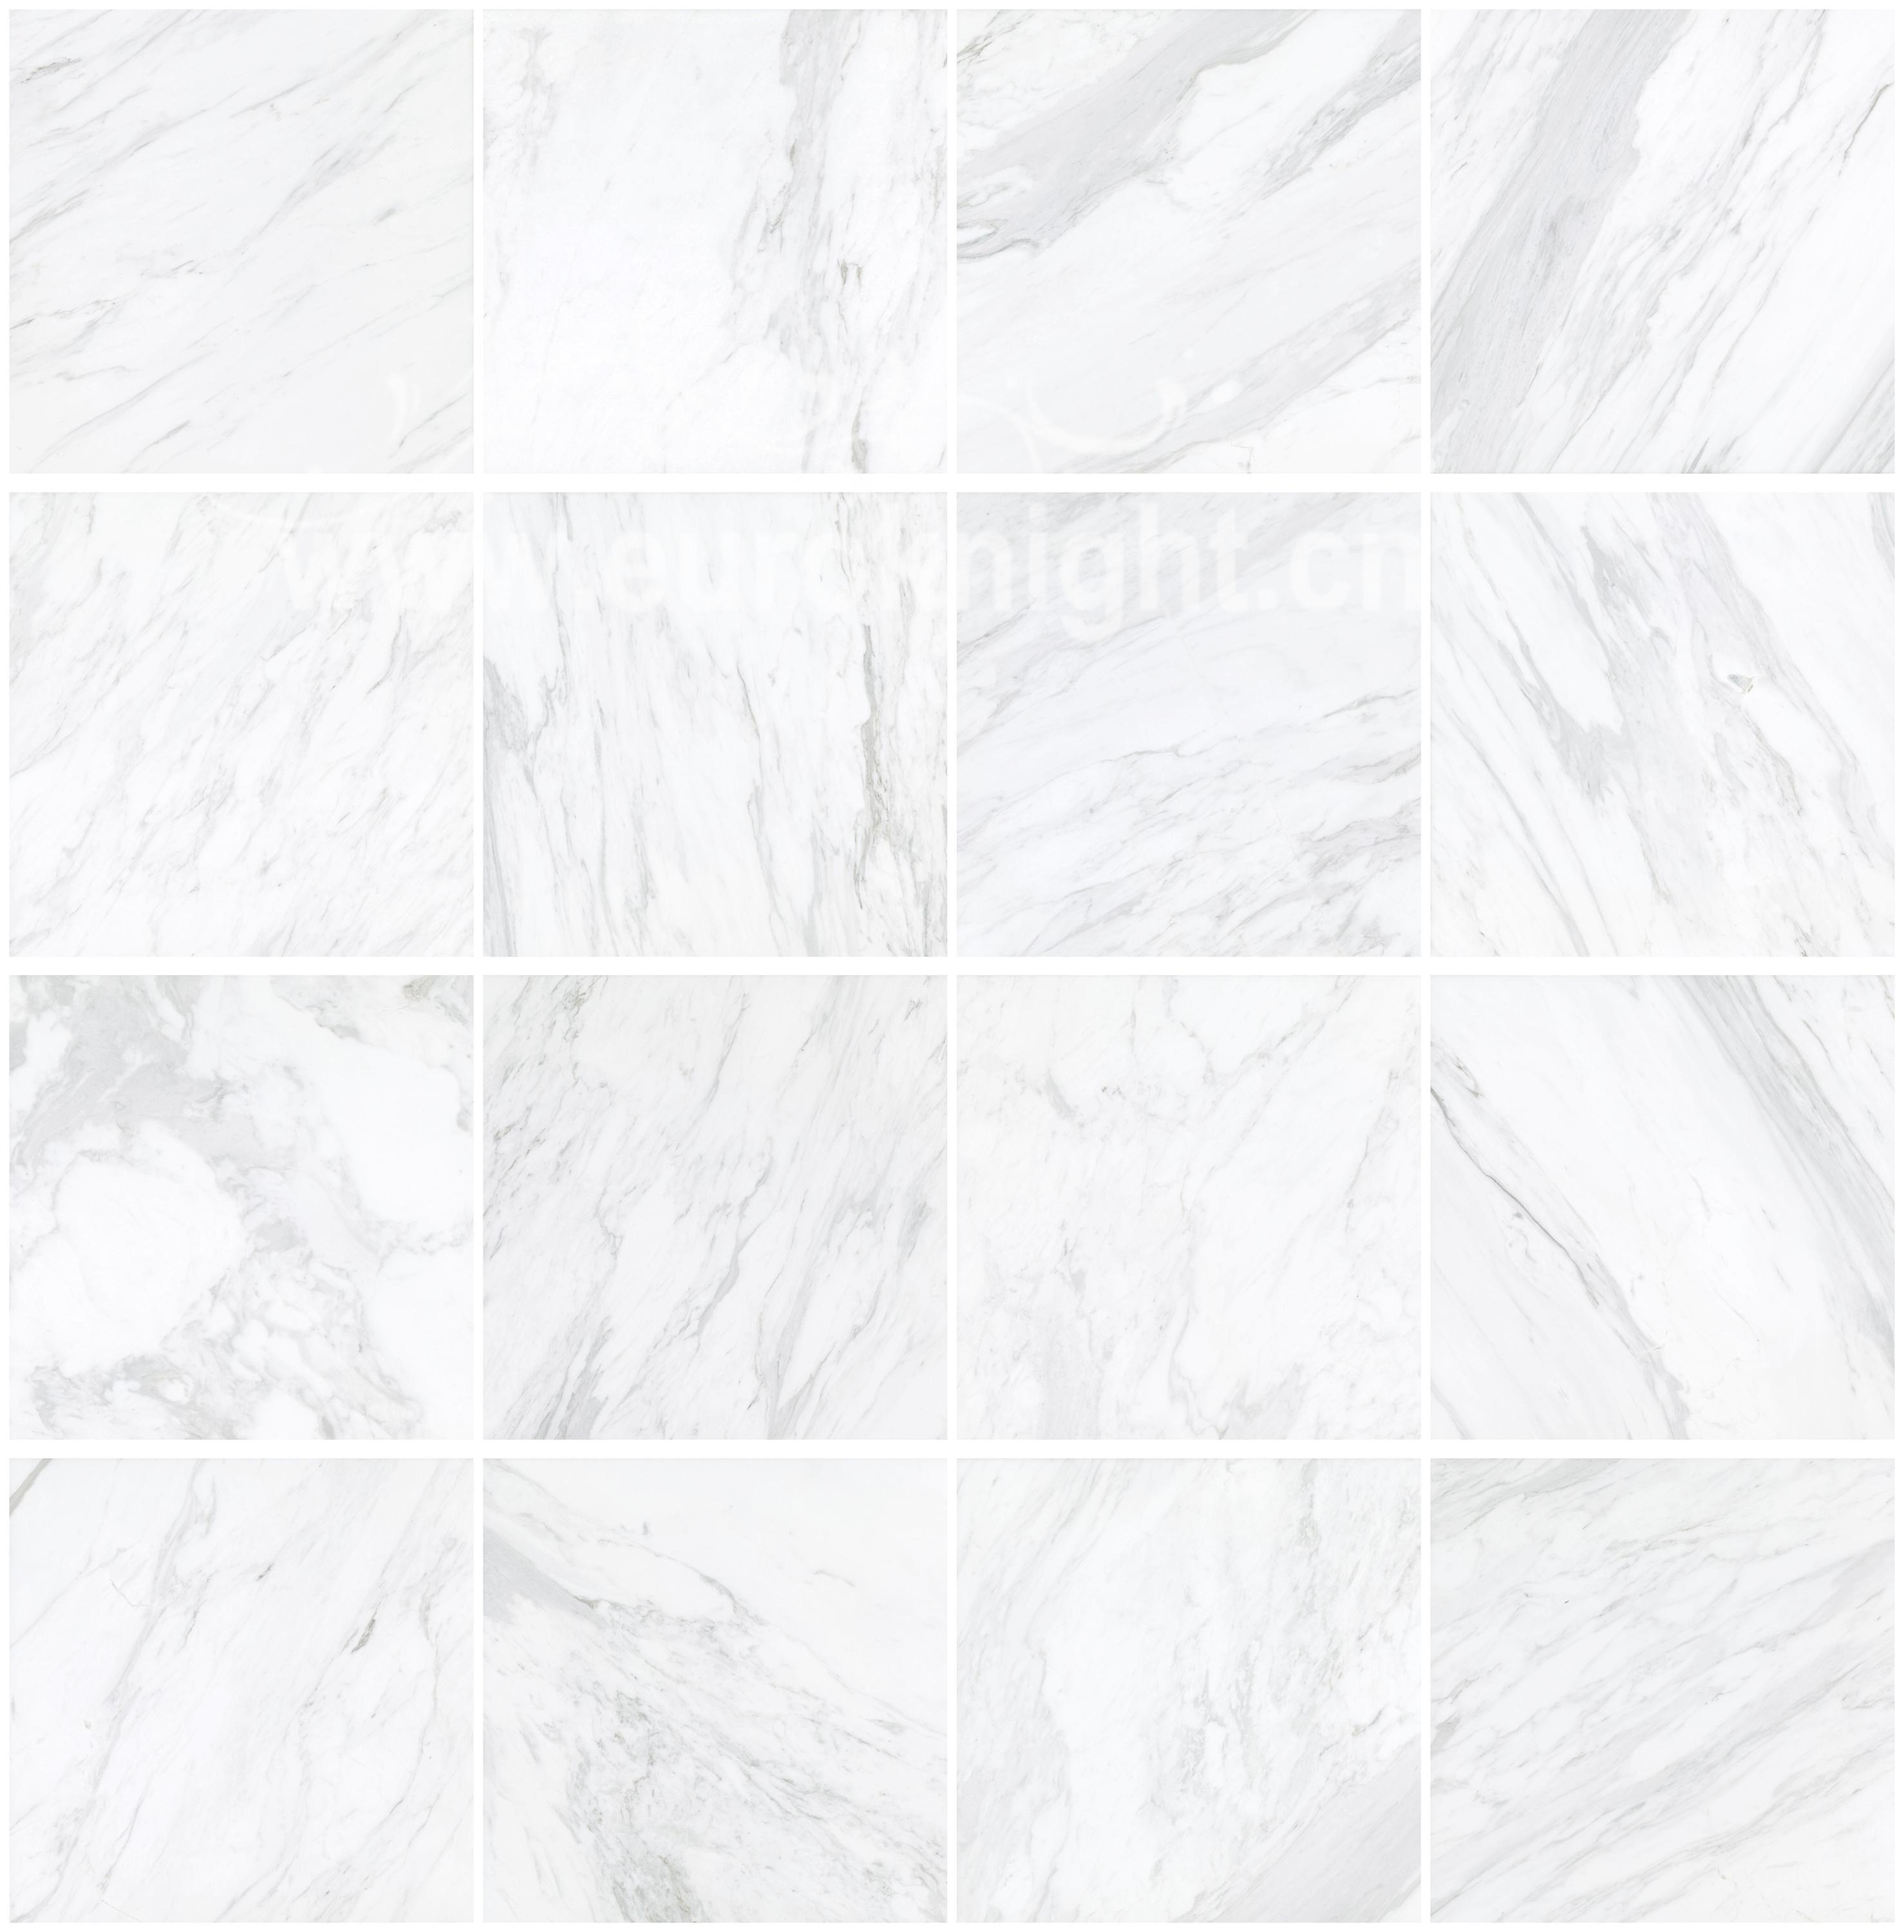 18x18 White 3d Picture Kerala Ceramic Floor Tile Price China Factory